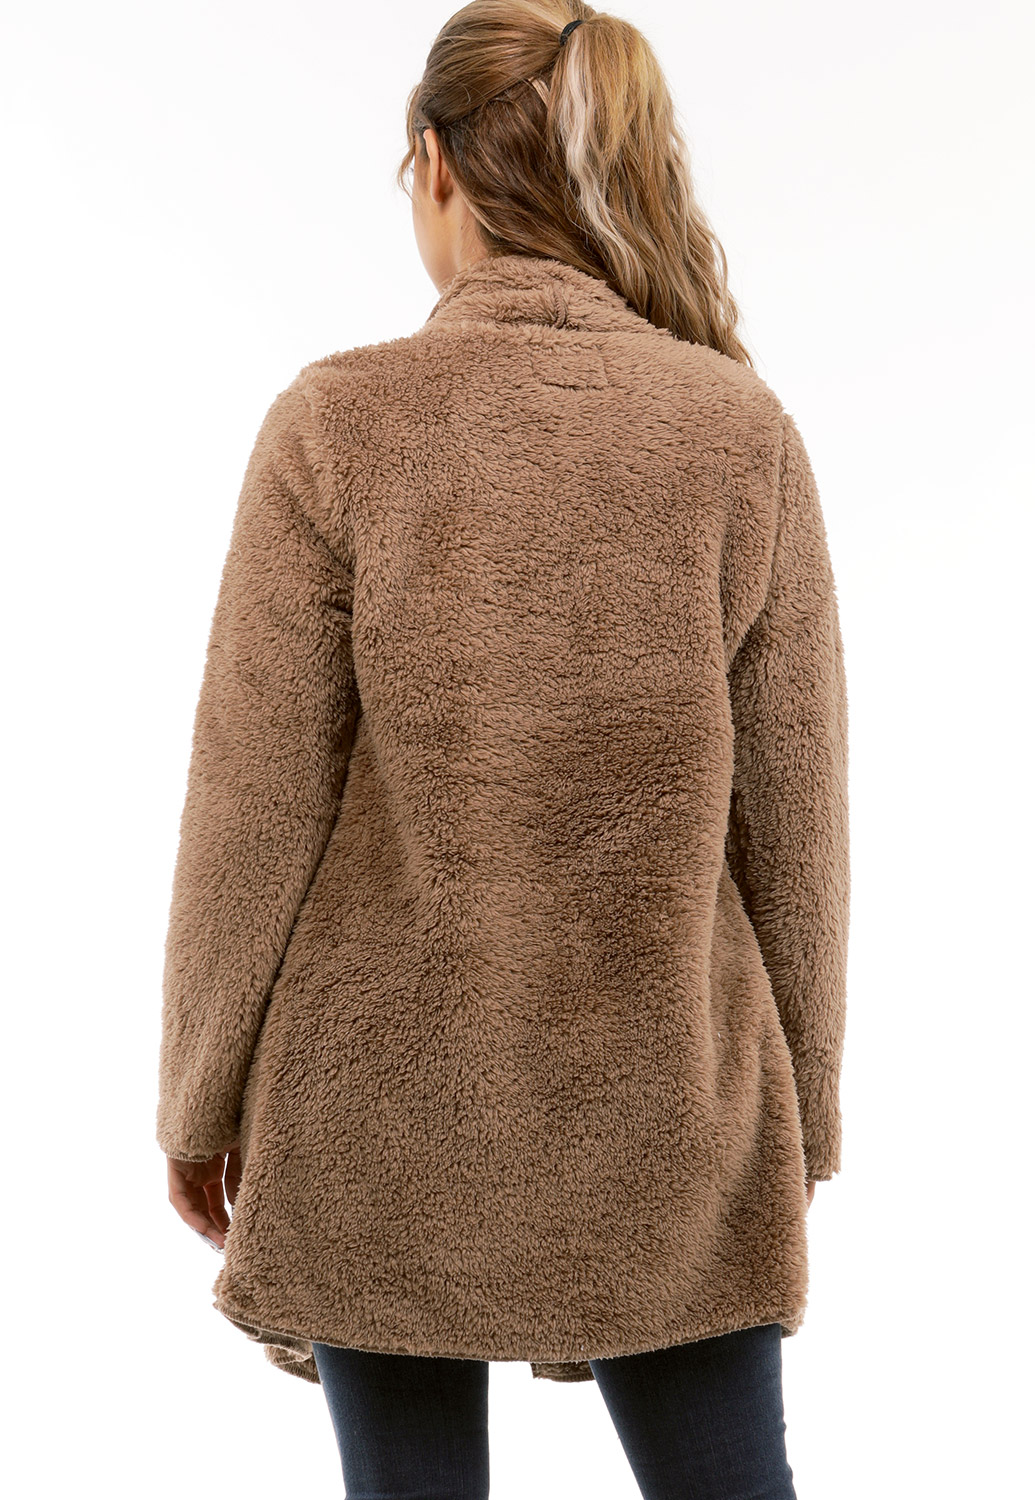 Faux Shearling Open Cardigan